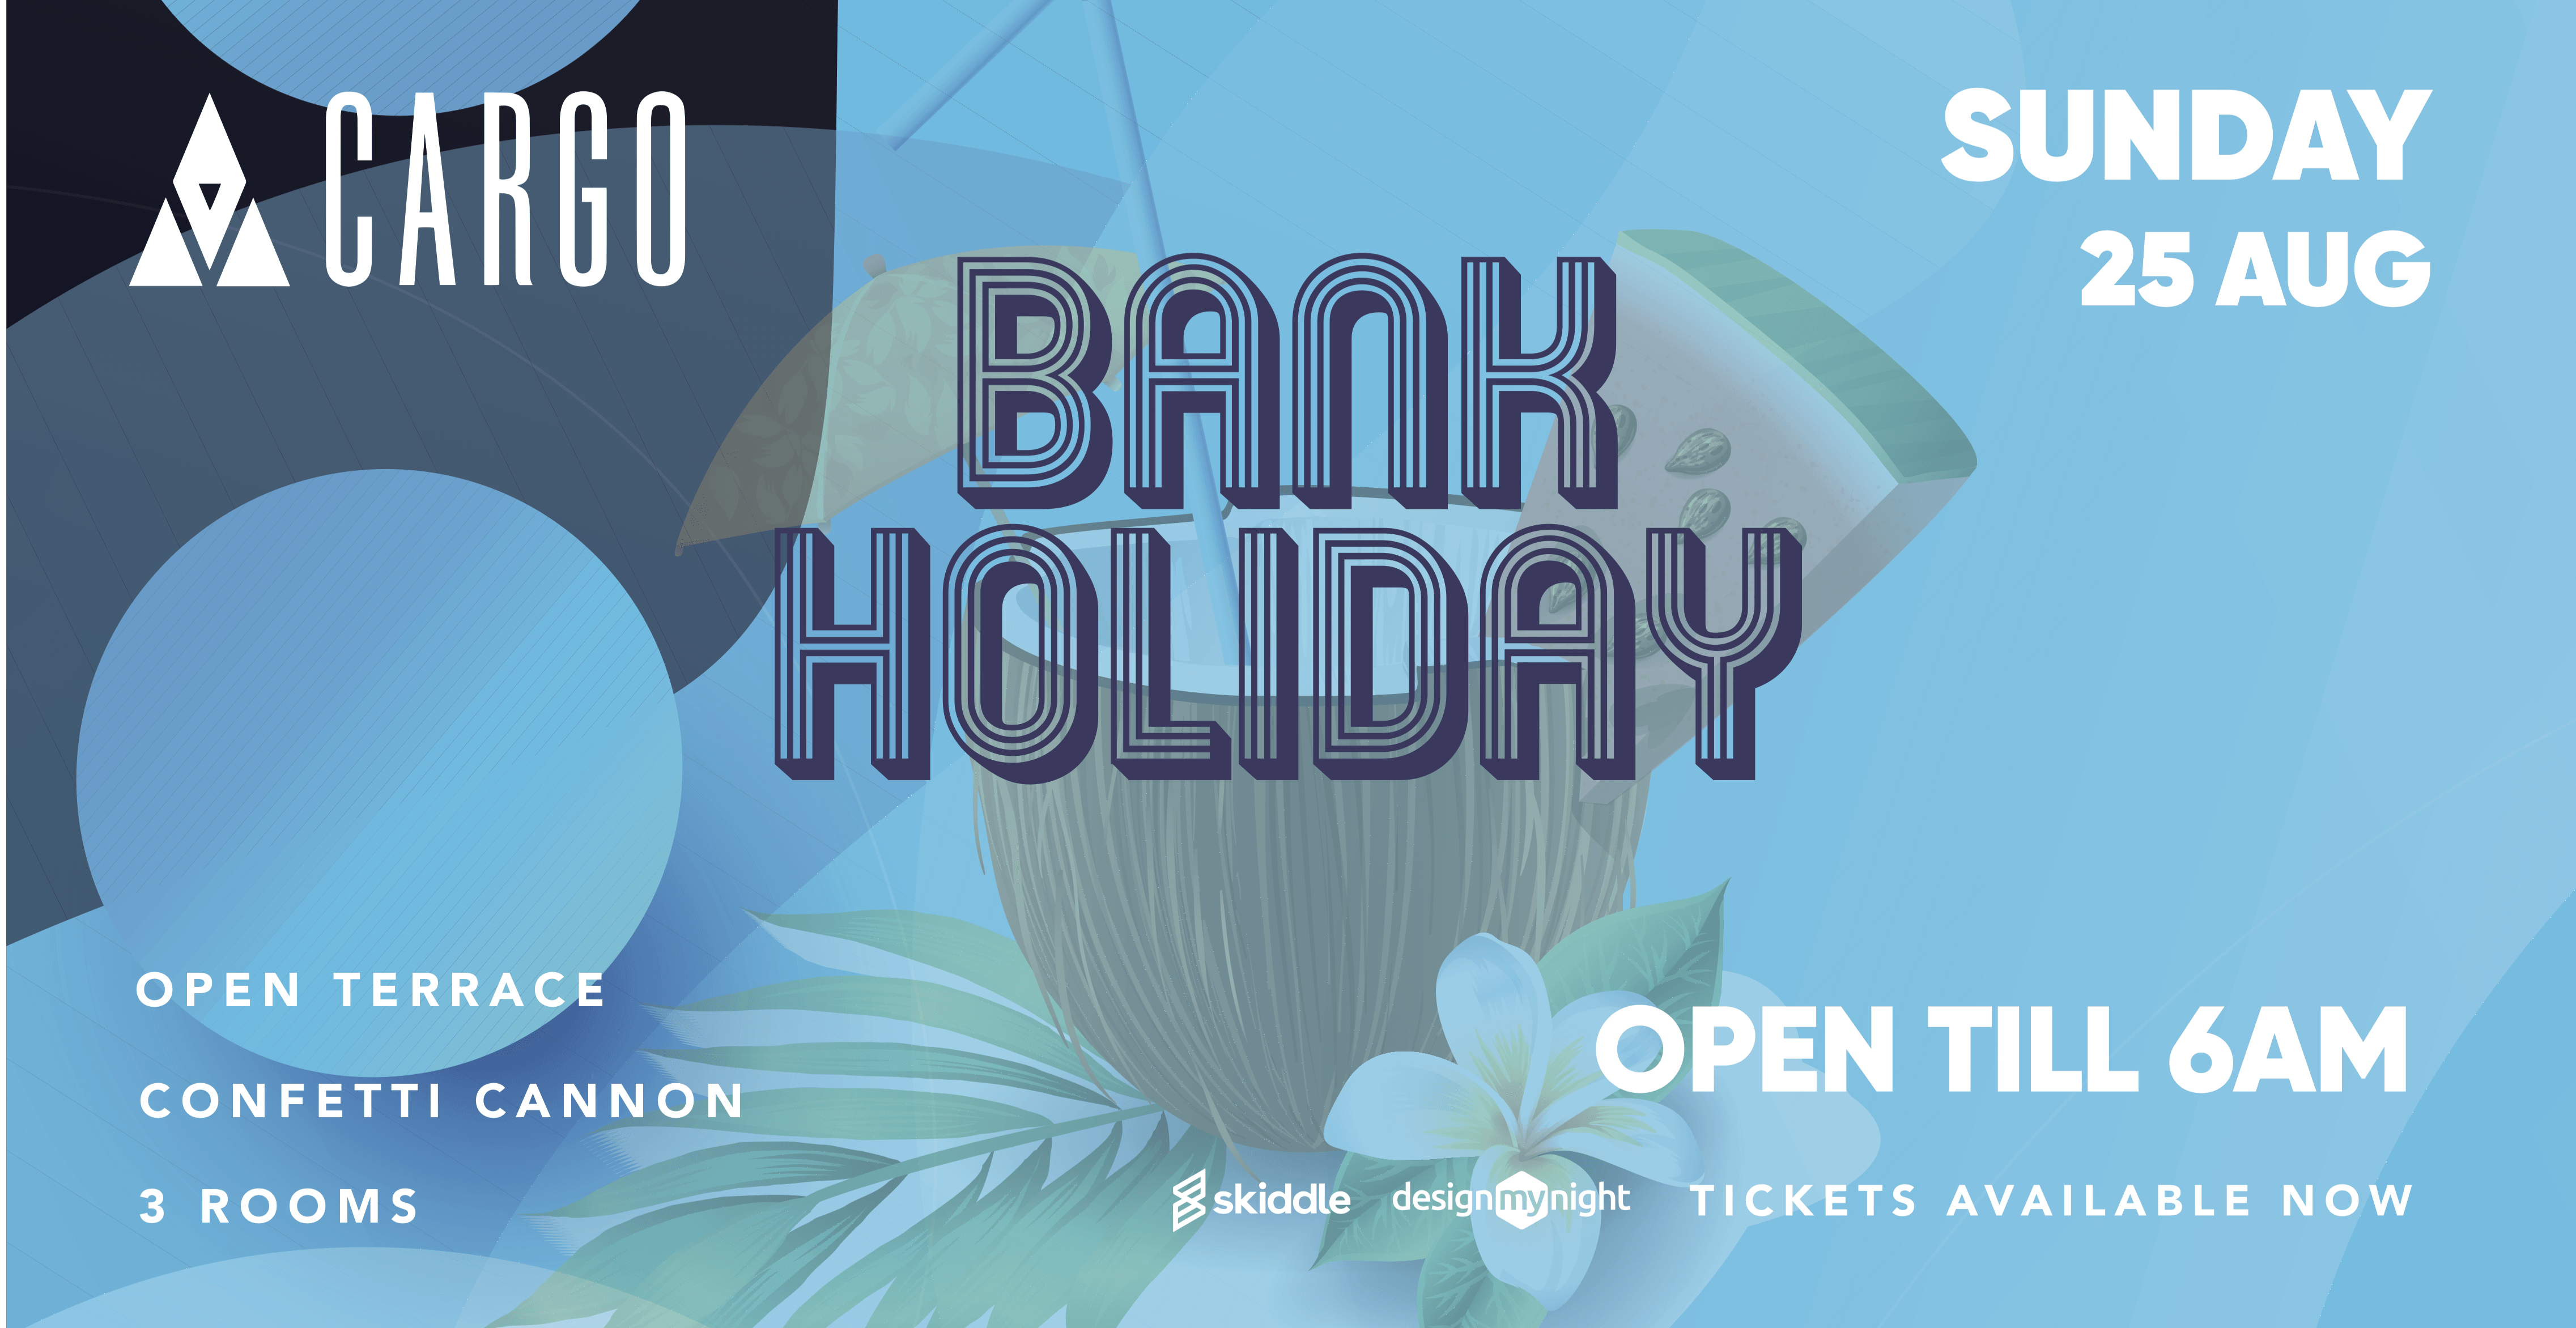 Bank Holiday Sunday at Cargo